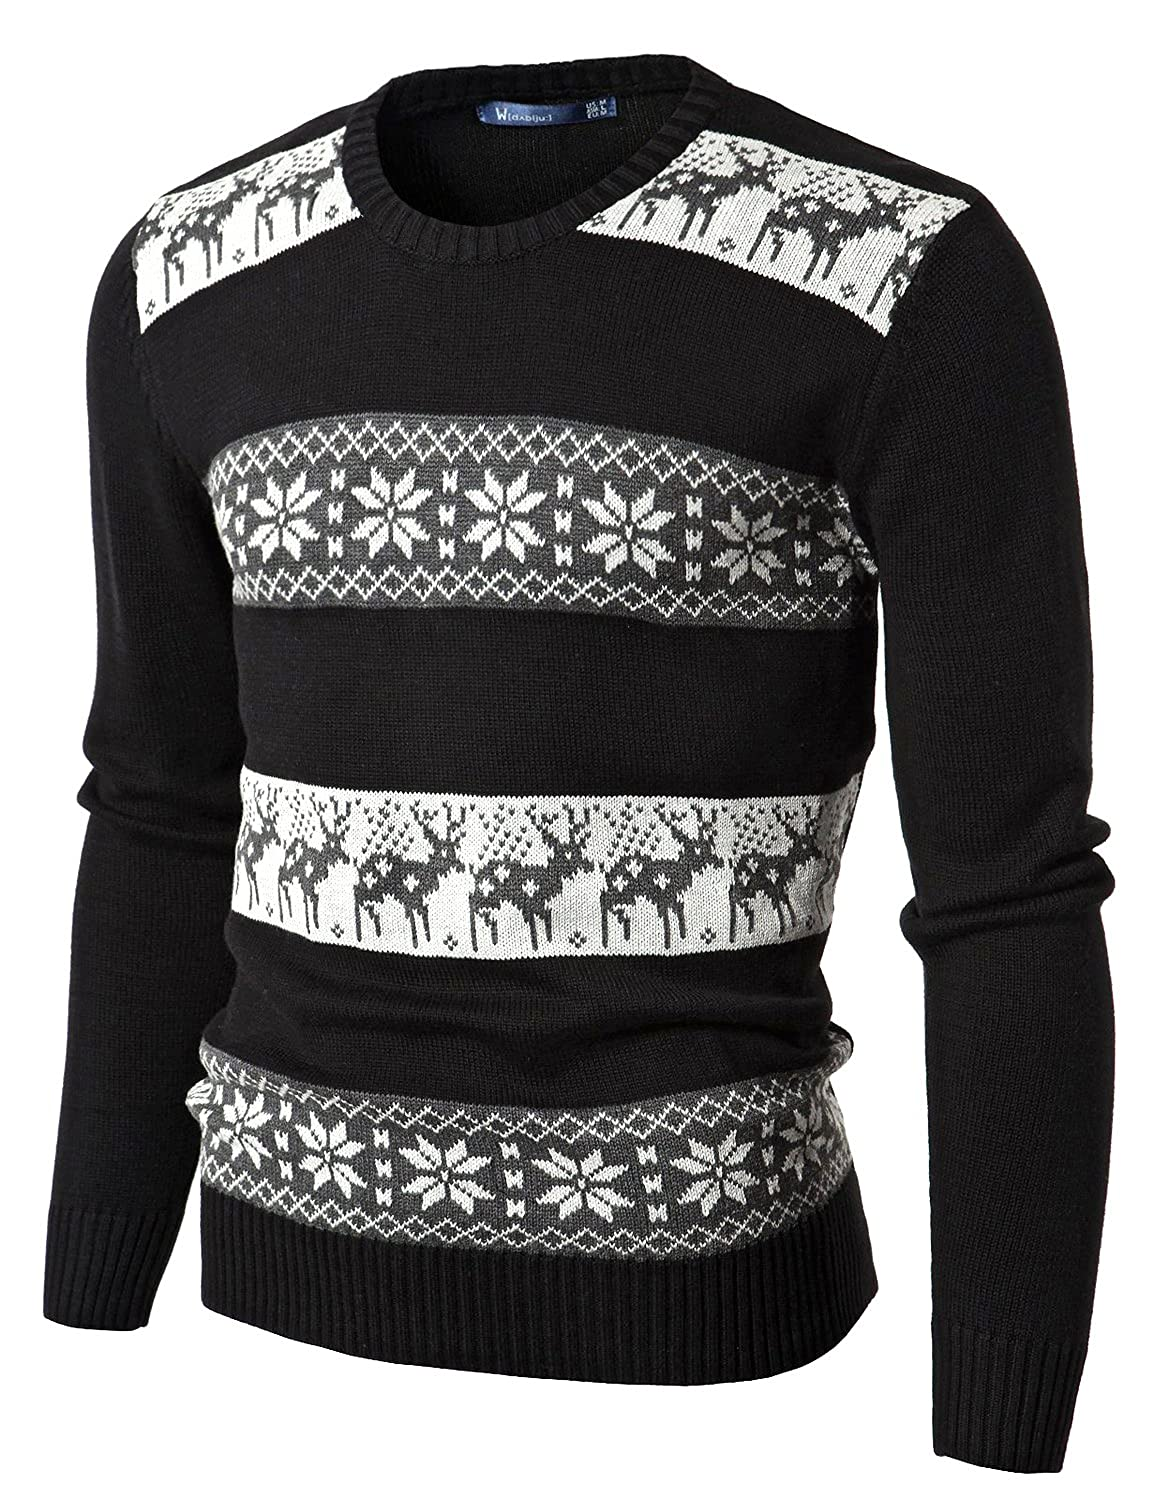 Doublju Mens Crew Neck Sweater with Snowflake Pattern BLACK (US-XL) at Amazon Mens Clothing store: Cardigan Sweaters